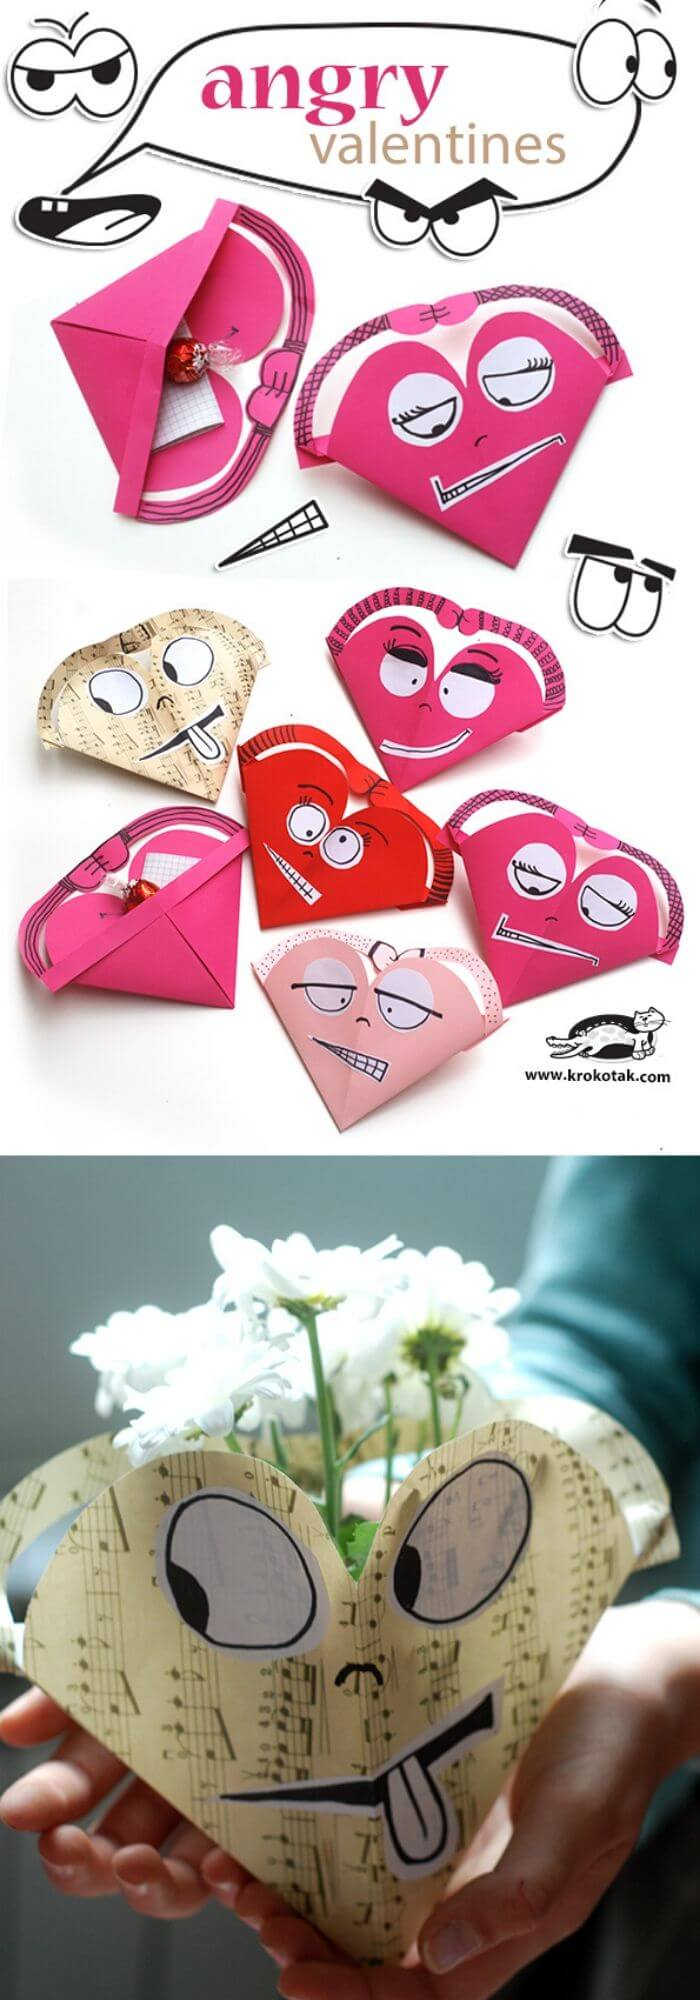 Angry Valentines | Heart-Shaped Crafts For Valentine's Day